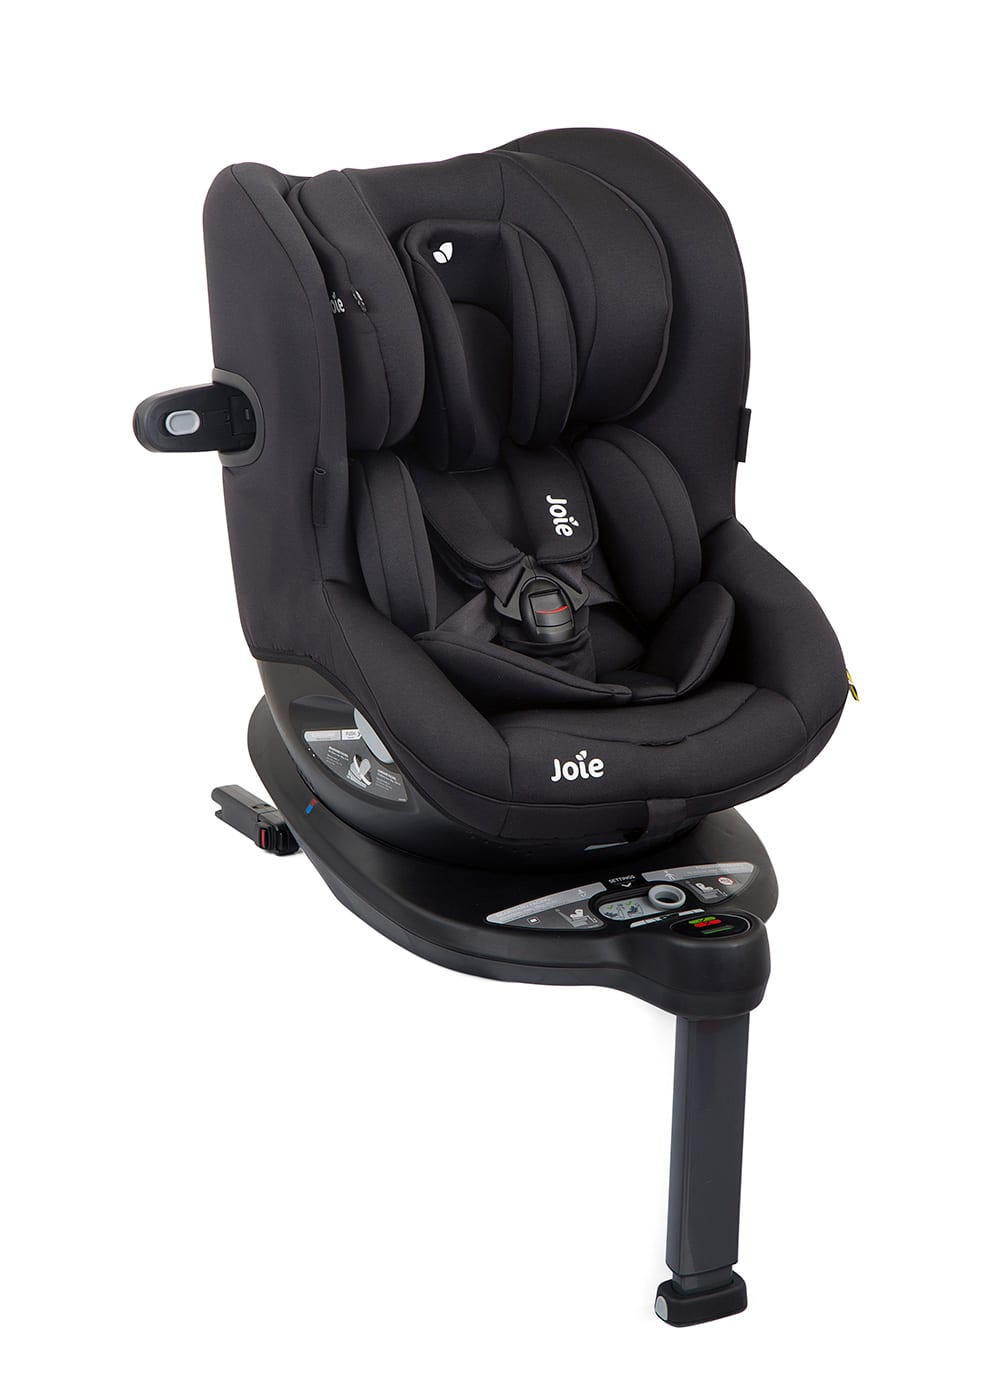 Joiei-Spin 360 car seat